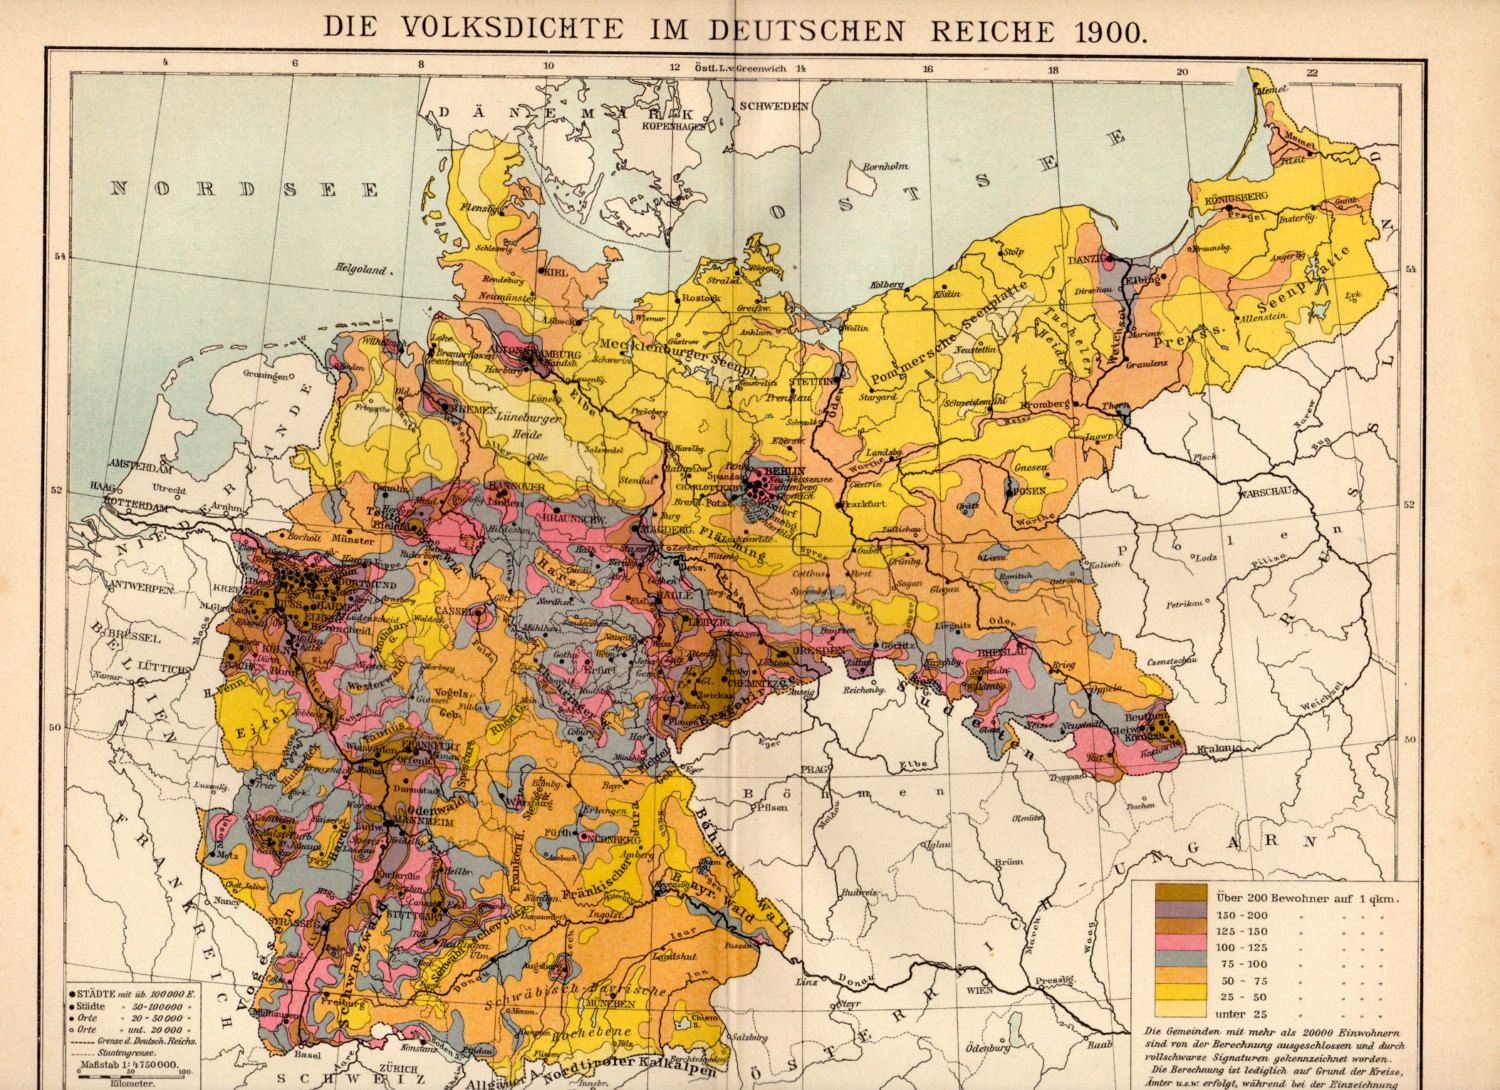 Historical Map Of Germany 1900.German Empire Population Density 1900 1500x1090 German